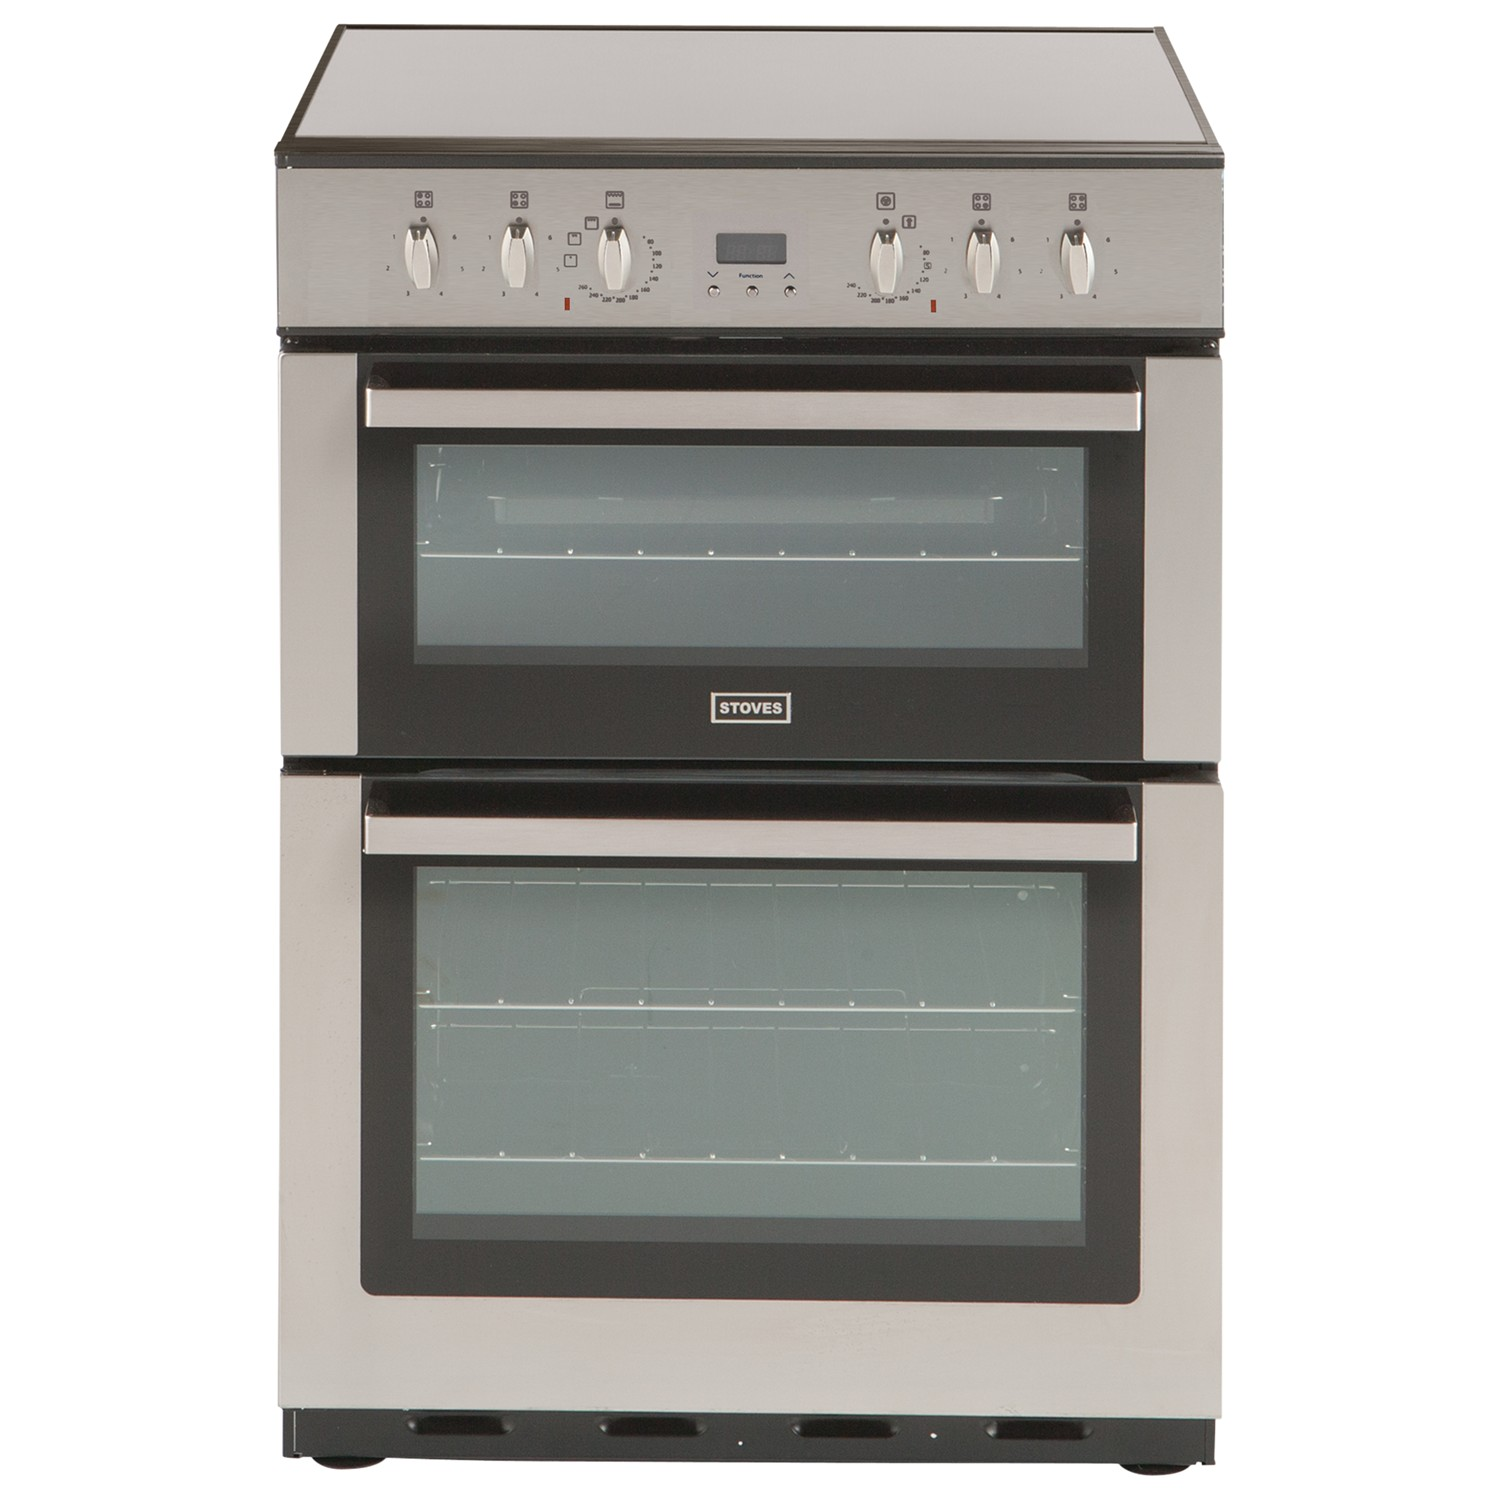 Stoves sec60dop electric cooker stainless steel review best buy review